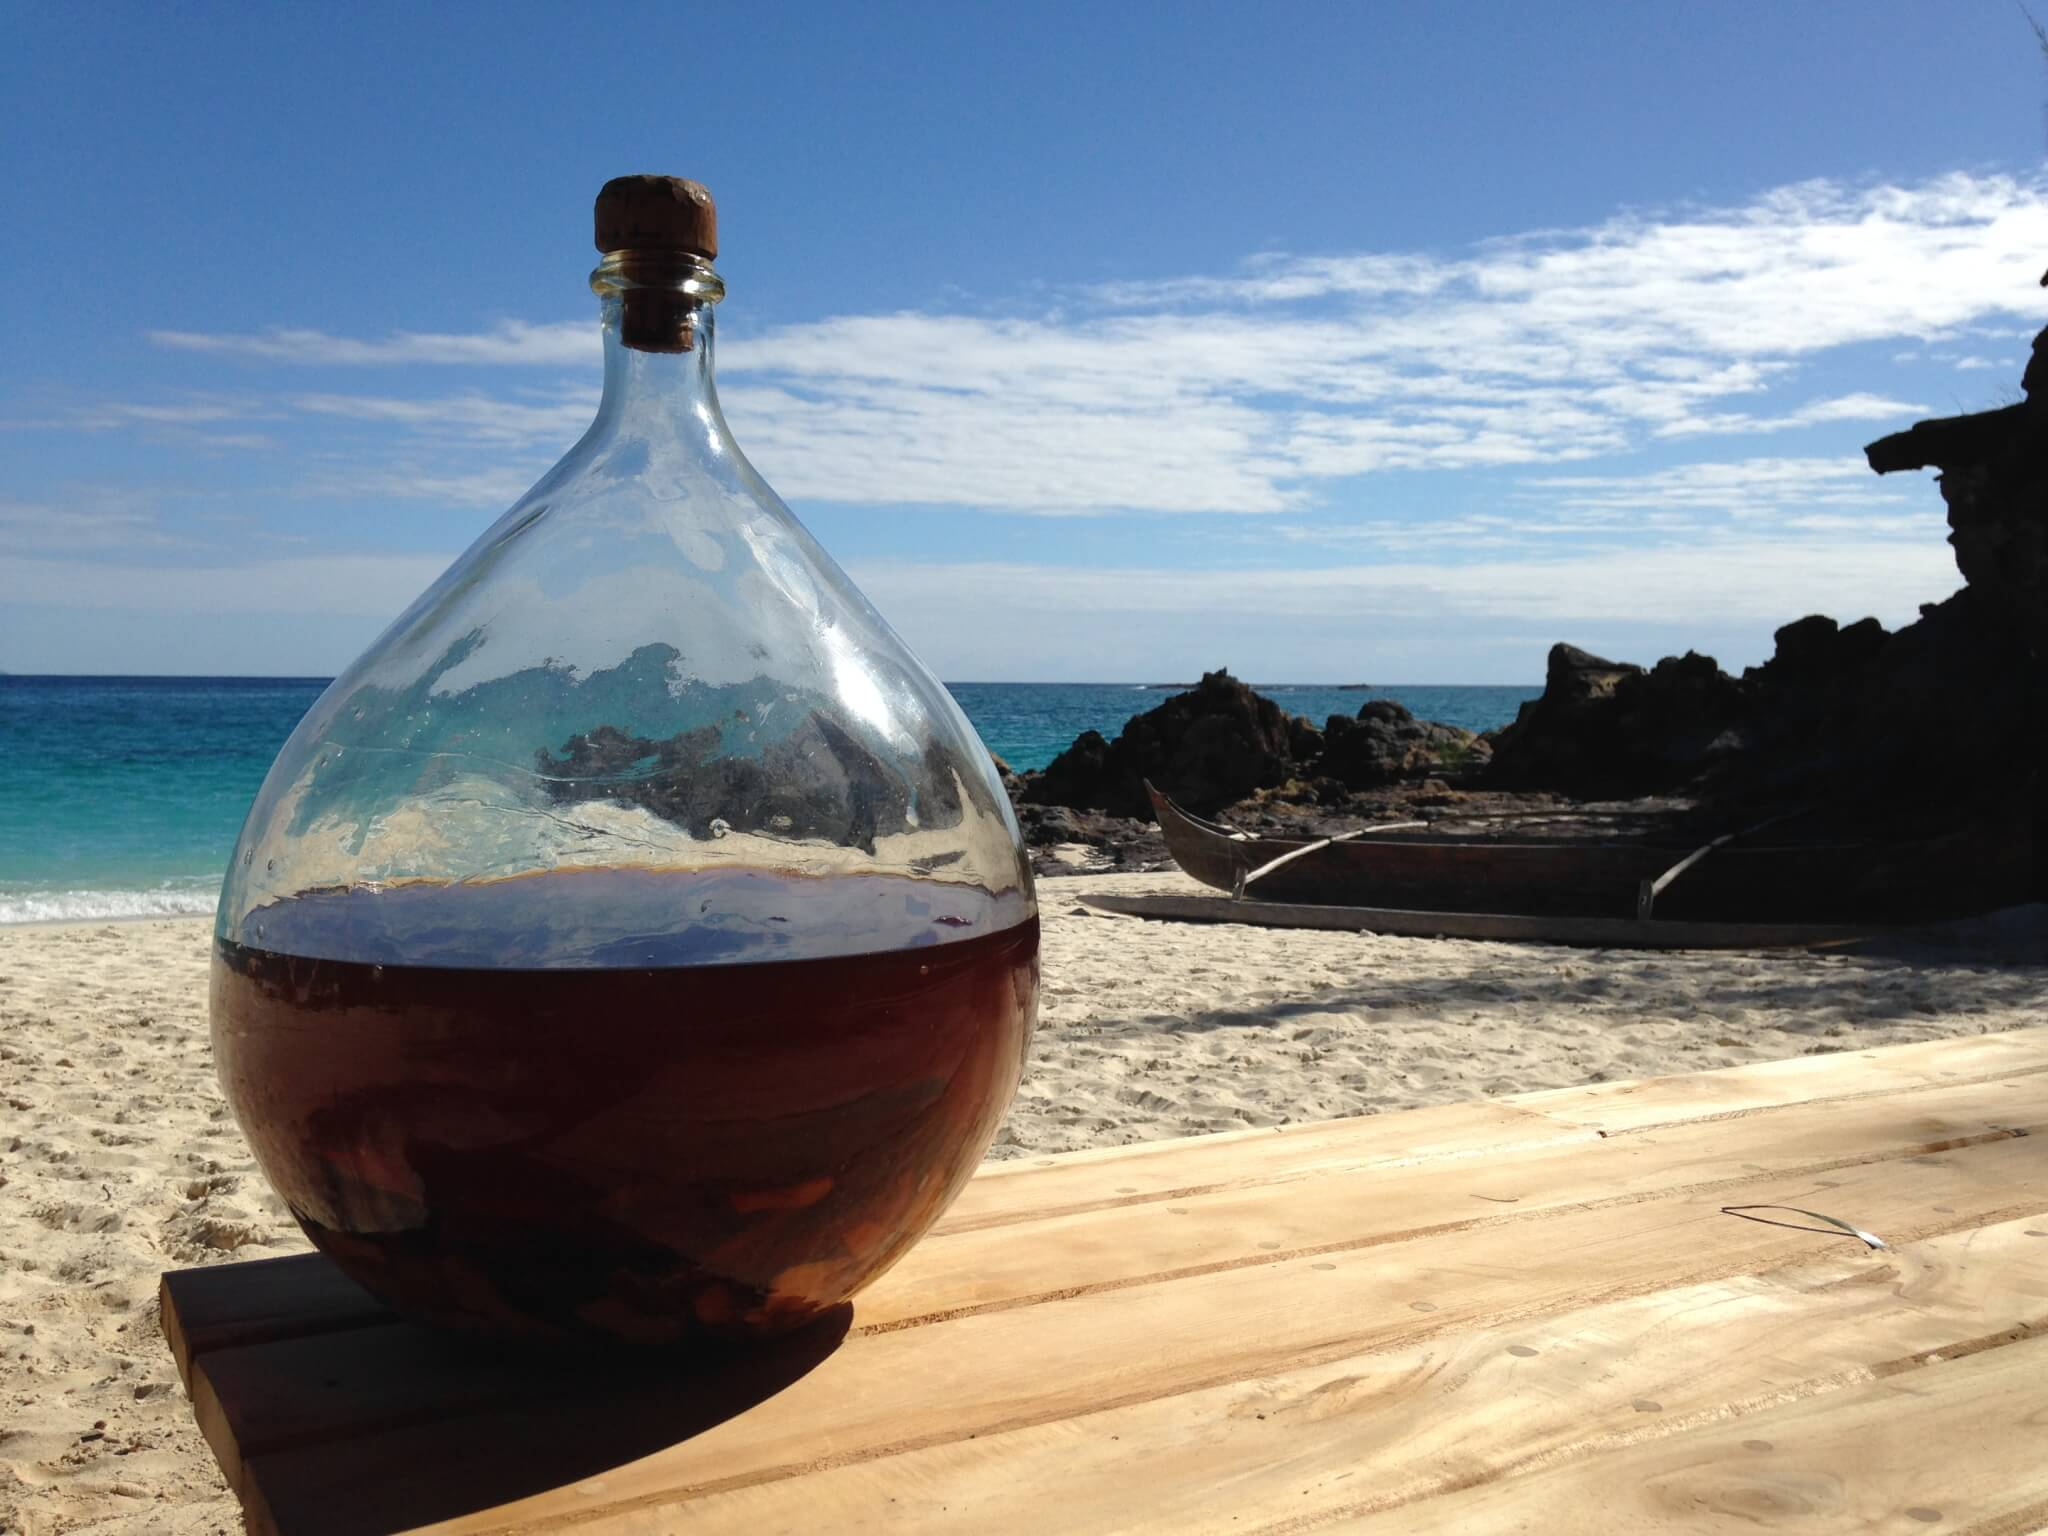 Bottle of homemade rum by the sea